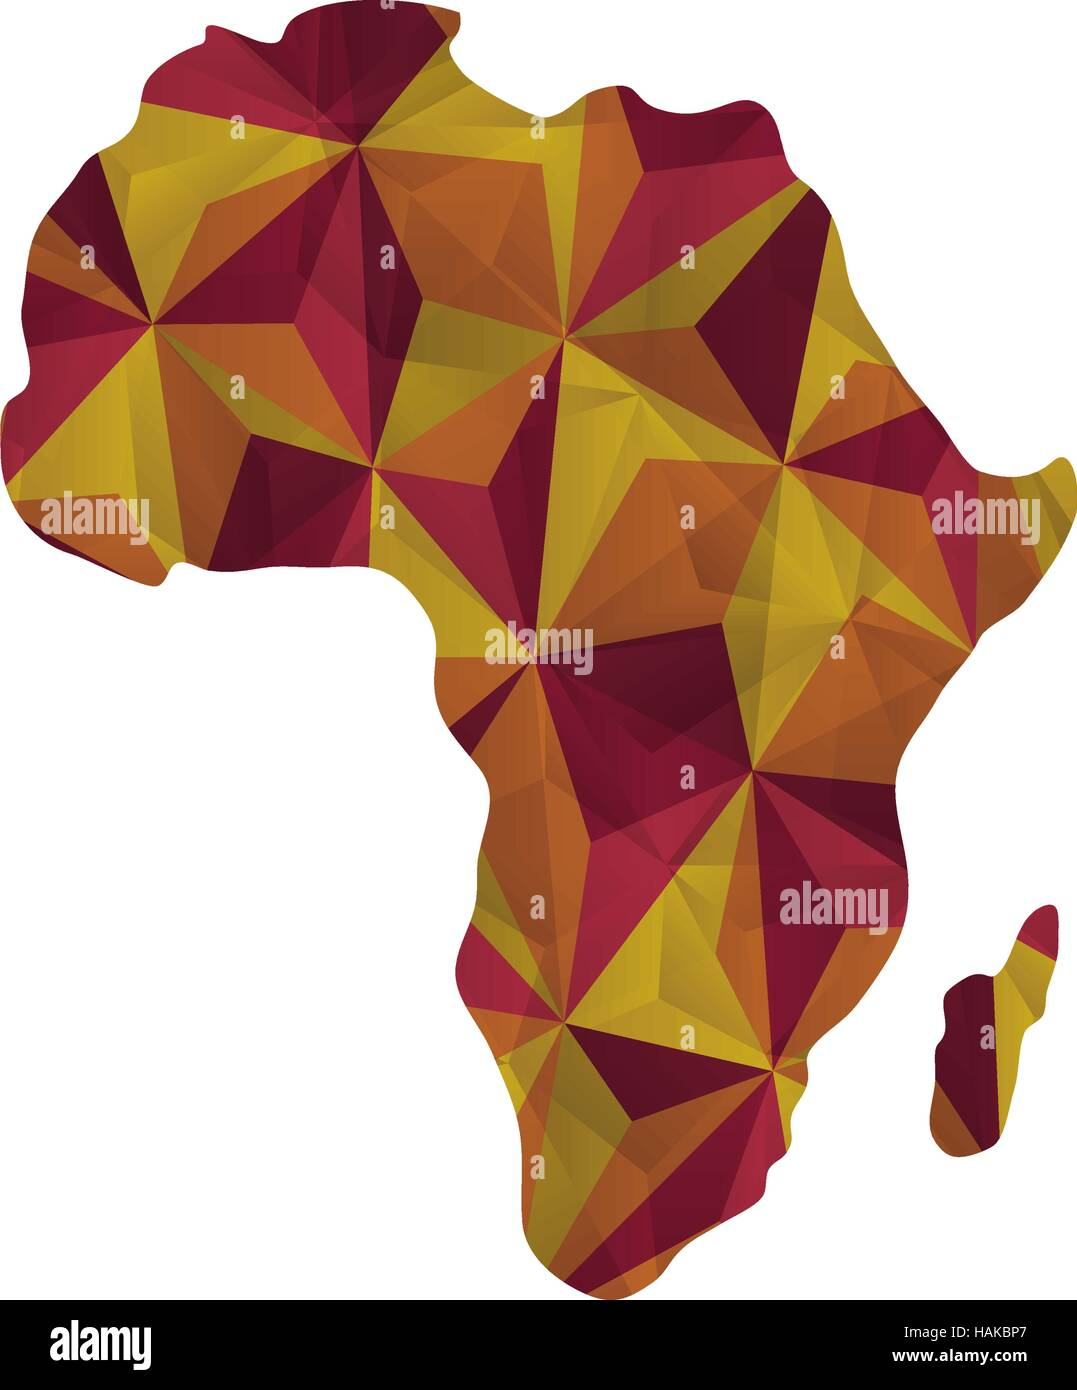 Africa map silhouette icon vector illustration graphic design Stock